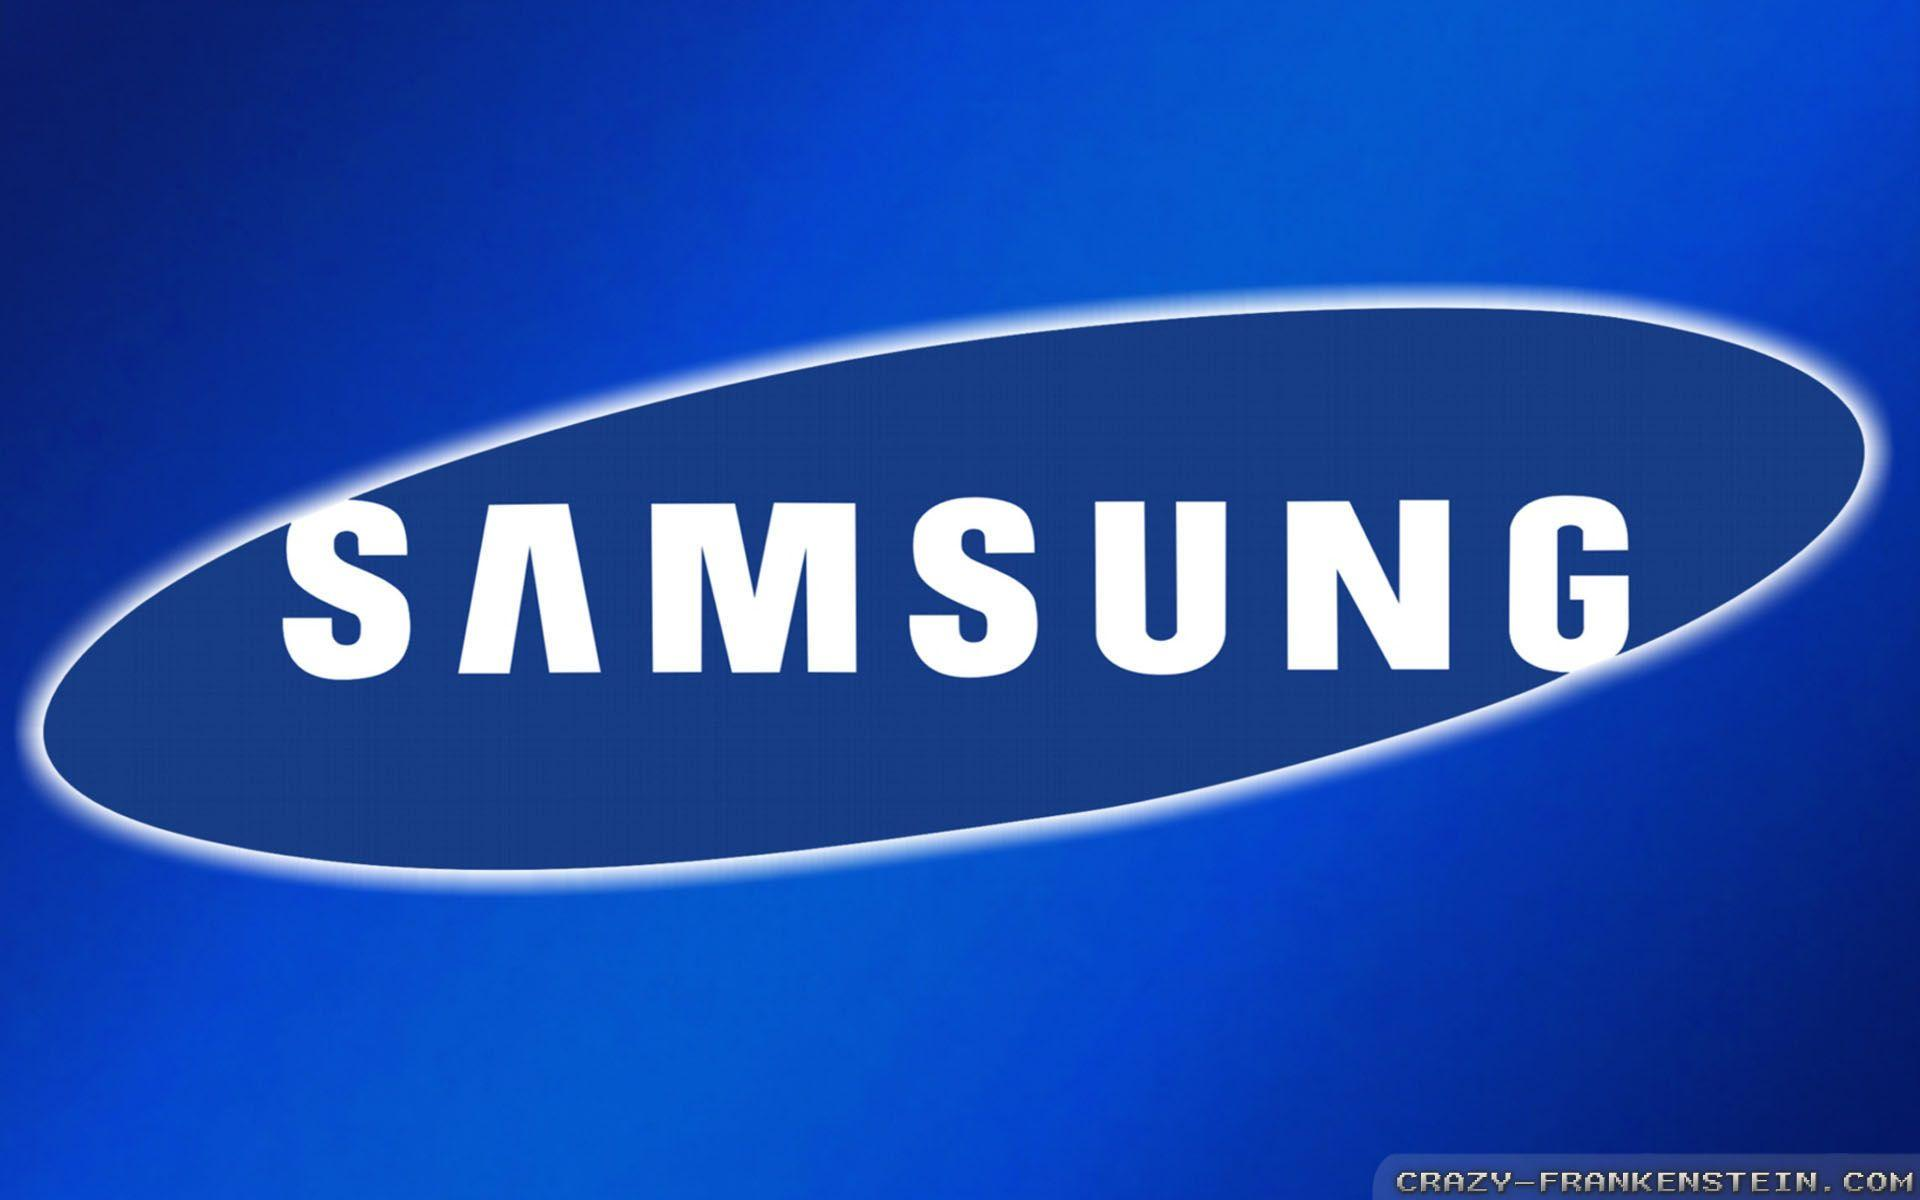 Samsung Has Announced Raise In Sale During The Global Lockdown